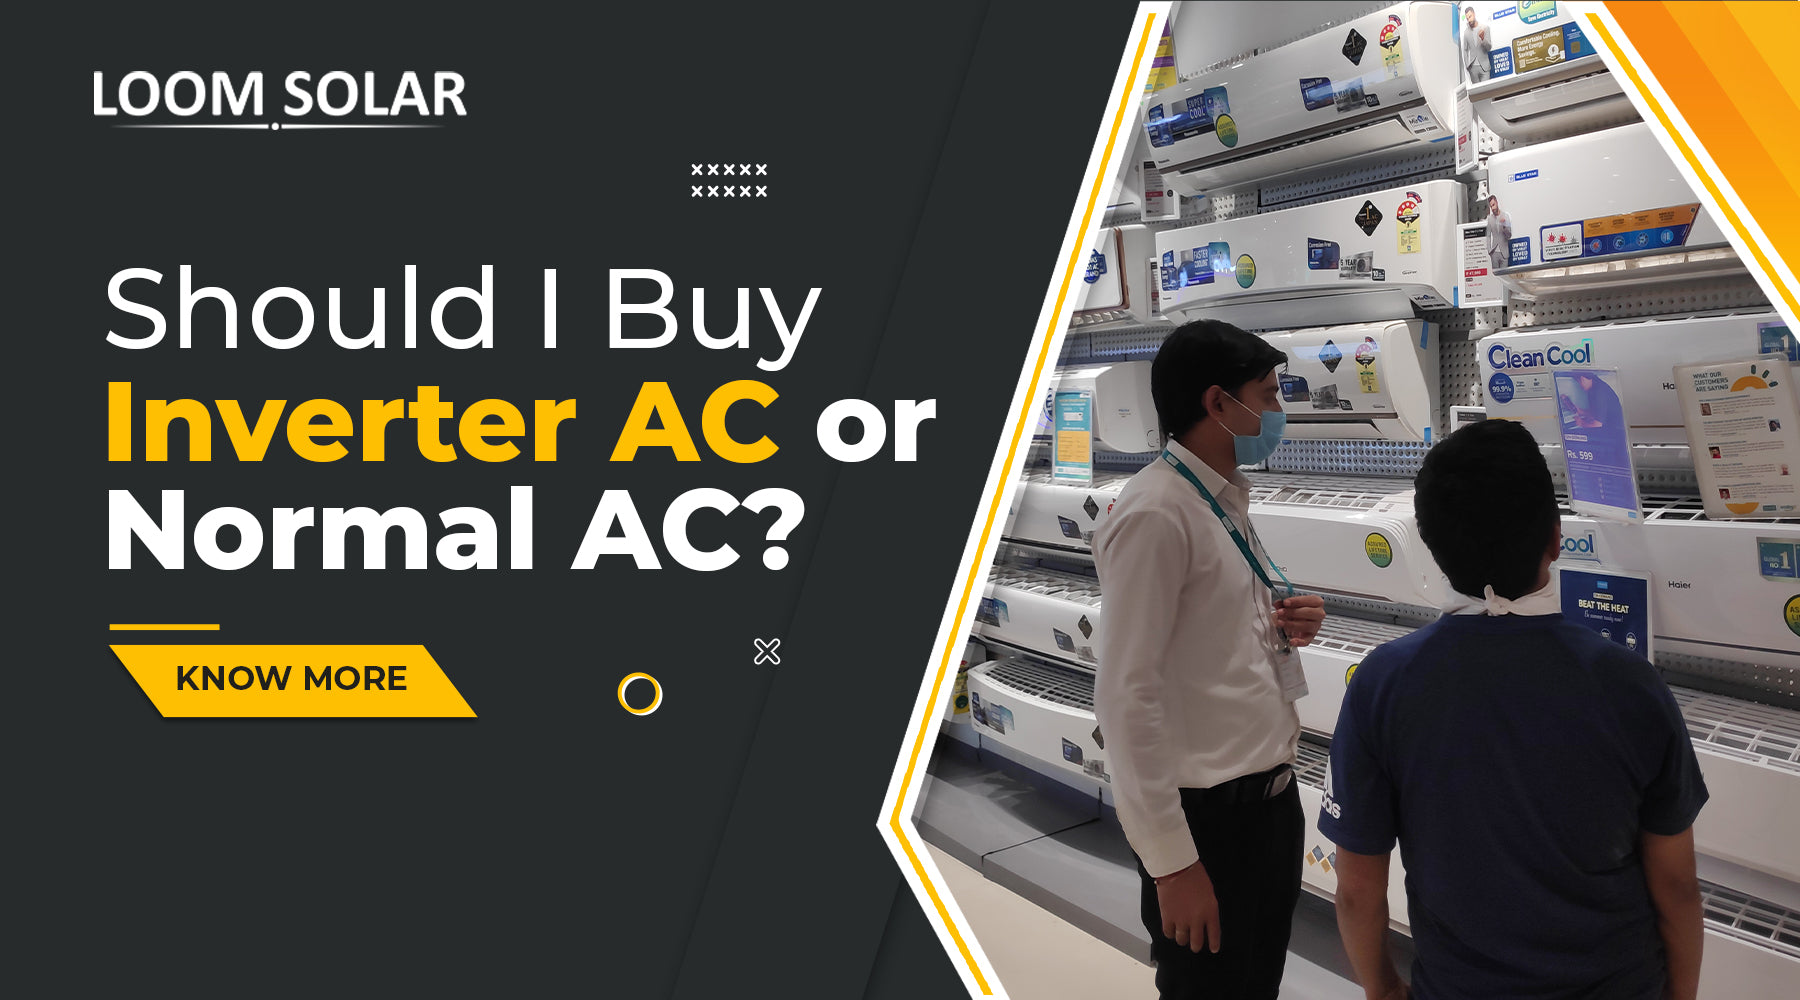 Should I buy Inverter AC or Normal AC?